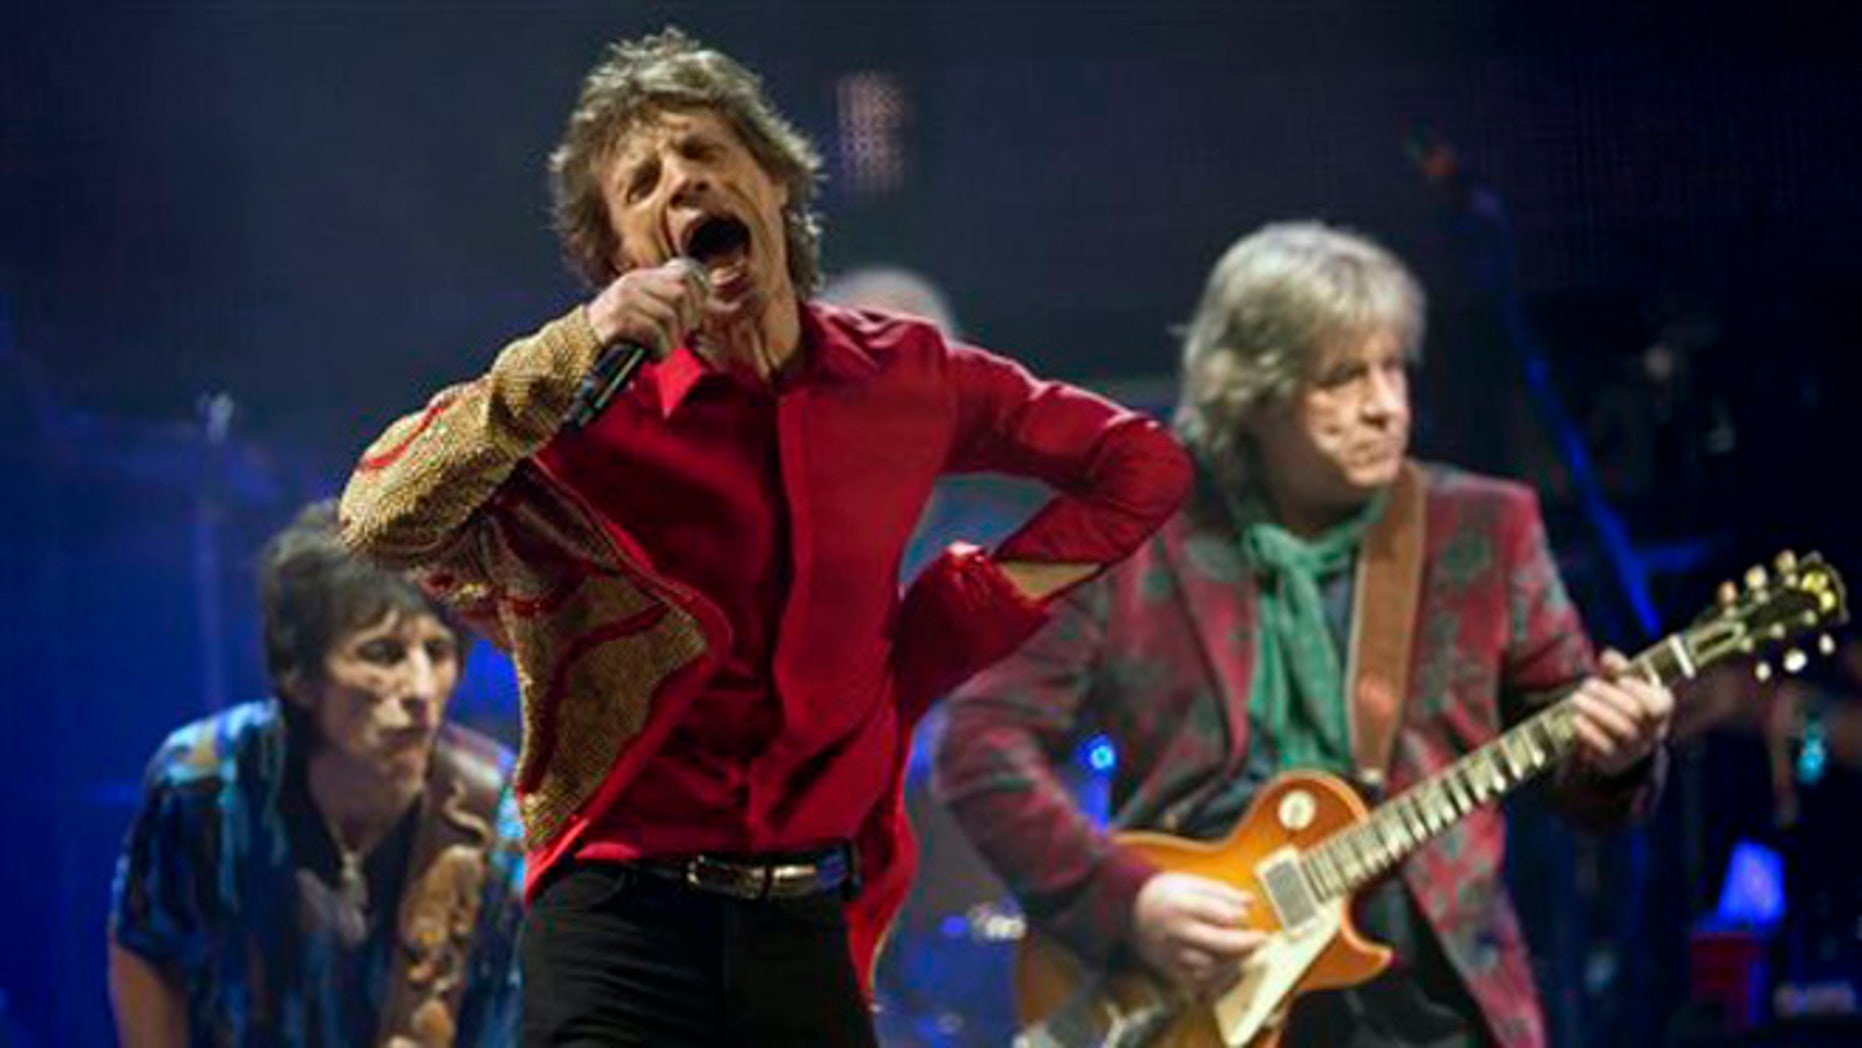 FILE - In this June 29, 2013 file photo Mick Jagger, center, Ronnie Wood, left, and Mick Taylor, of British rock band The Rolling Stones, perform on the Pyramid main stage at Glastonbury, England. The Rolling Stones on Tuesday, Nov. 19, 2013 announced they'll be playing a gig March 22, 2014 at the Adelaide Oval in Australia. The band hasn't played the country since 2006. A news release says former member Taylor will be a special guest for the concert. (Photo by Joel Ryan/Invision/AP, File)